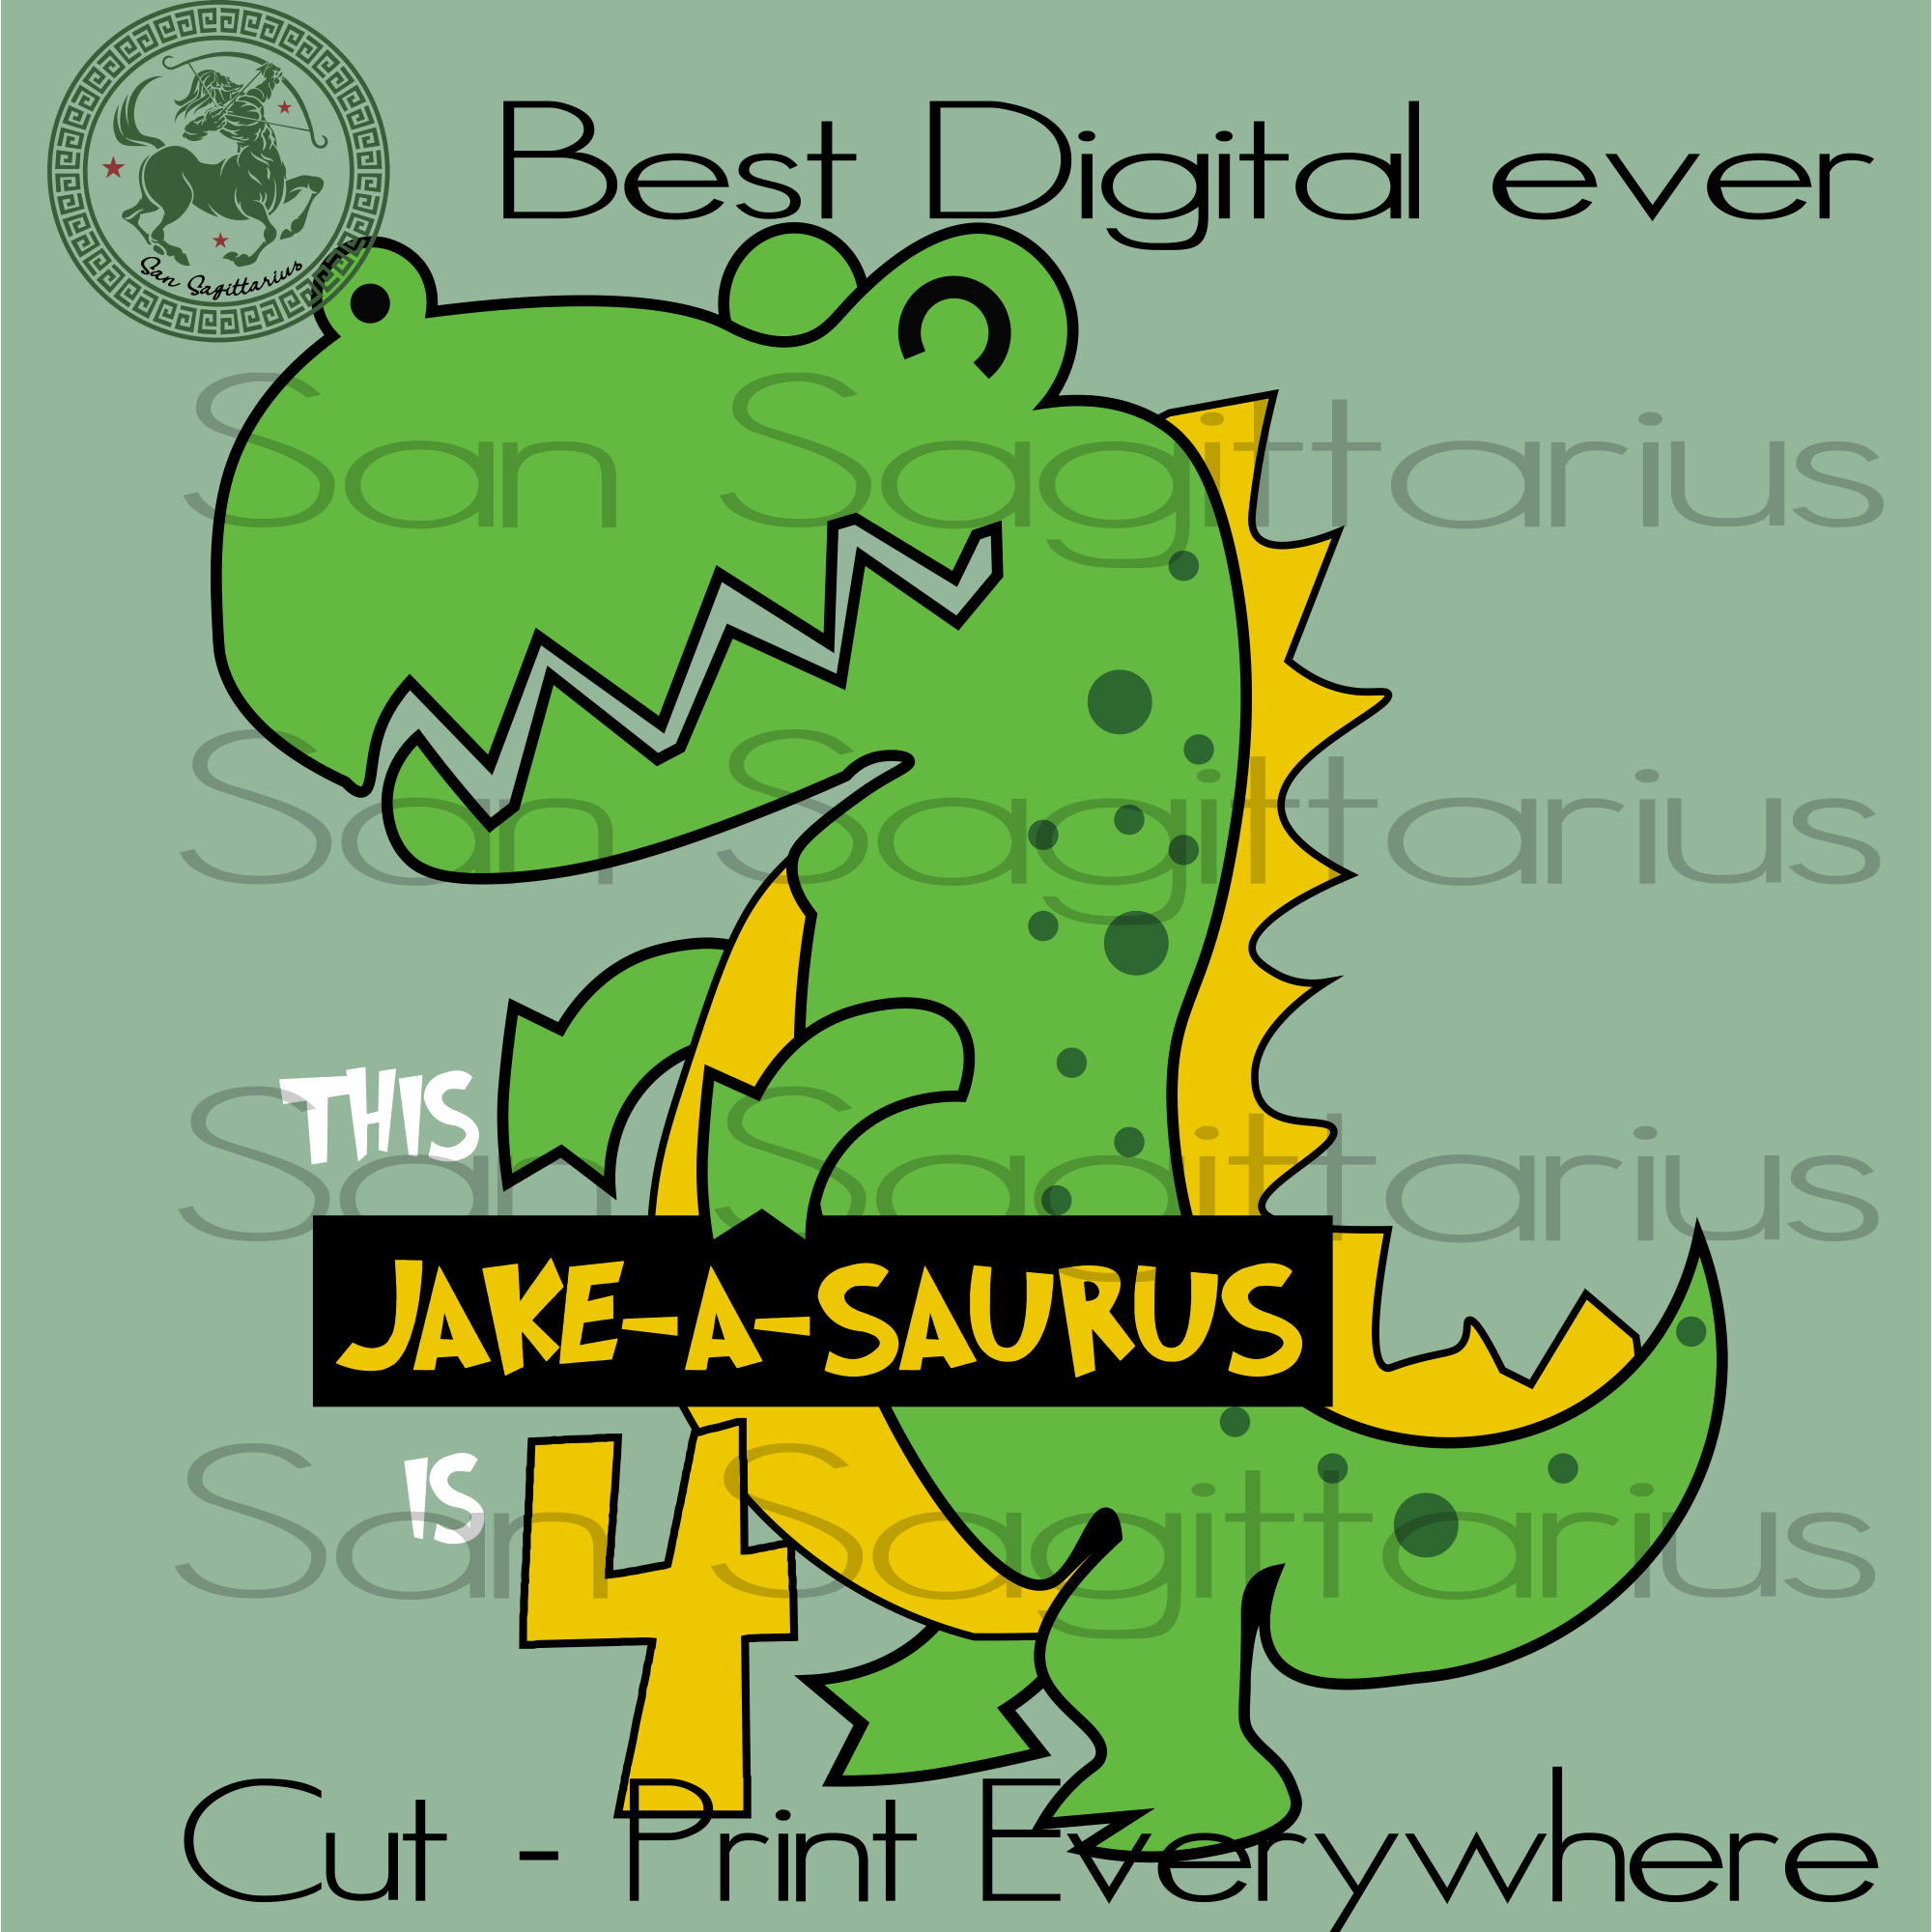 4th Birthday Kids Customized, Cute Dinosaur Svg, Dinosaur Clipart, Dinosaur Vector, Birthday SVG Customized, Birthday Son Cut File, Birthday Gift Funny Kids SVG Files For Cricut Silhouette Instant Download | San Sagittarius